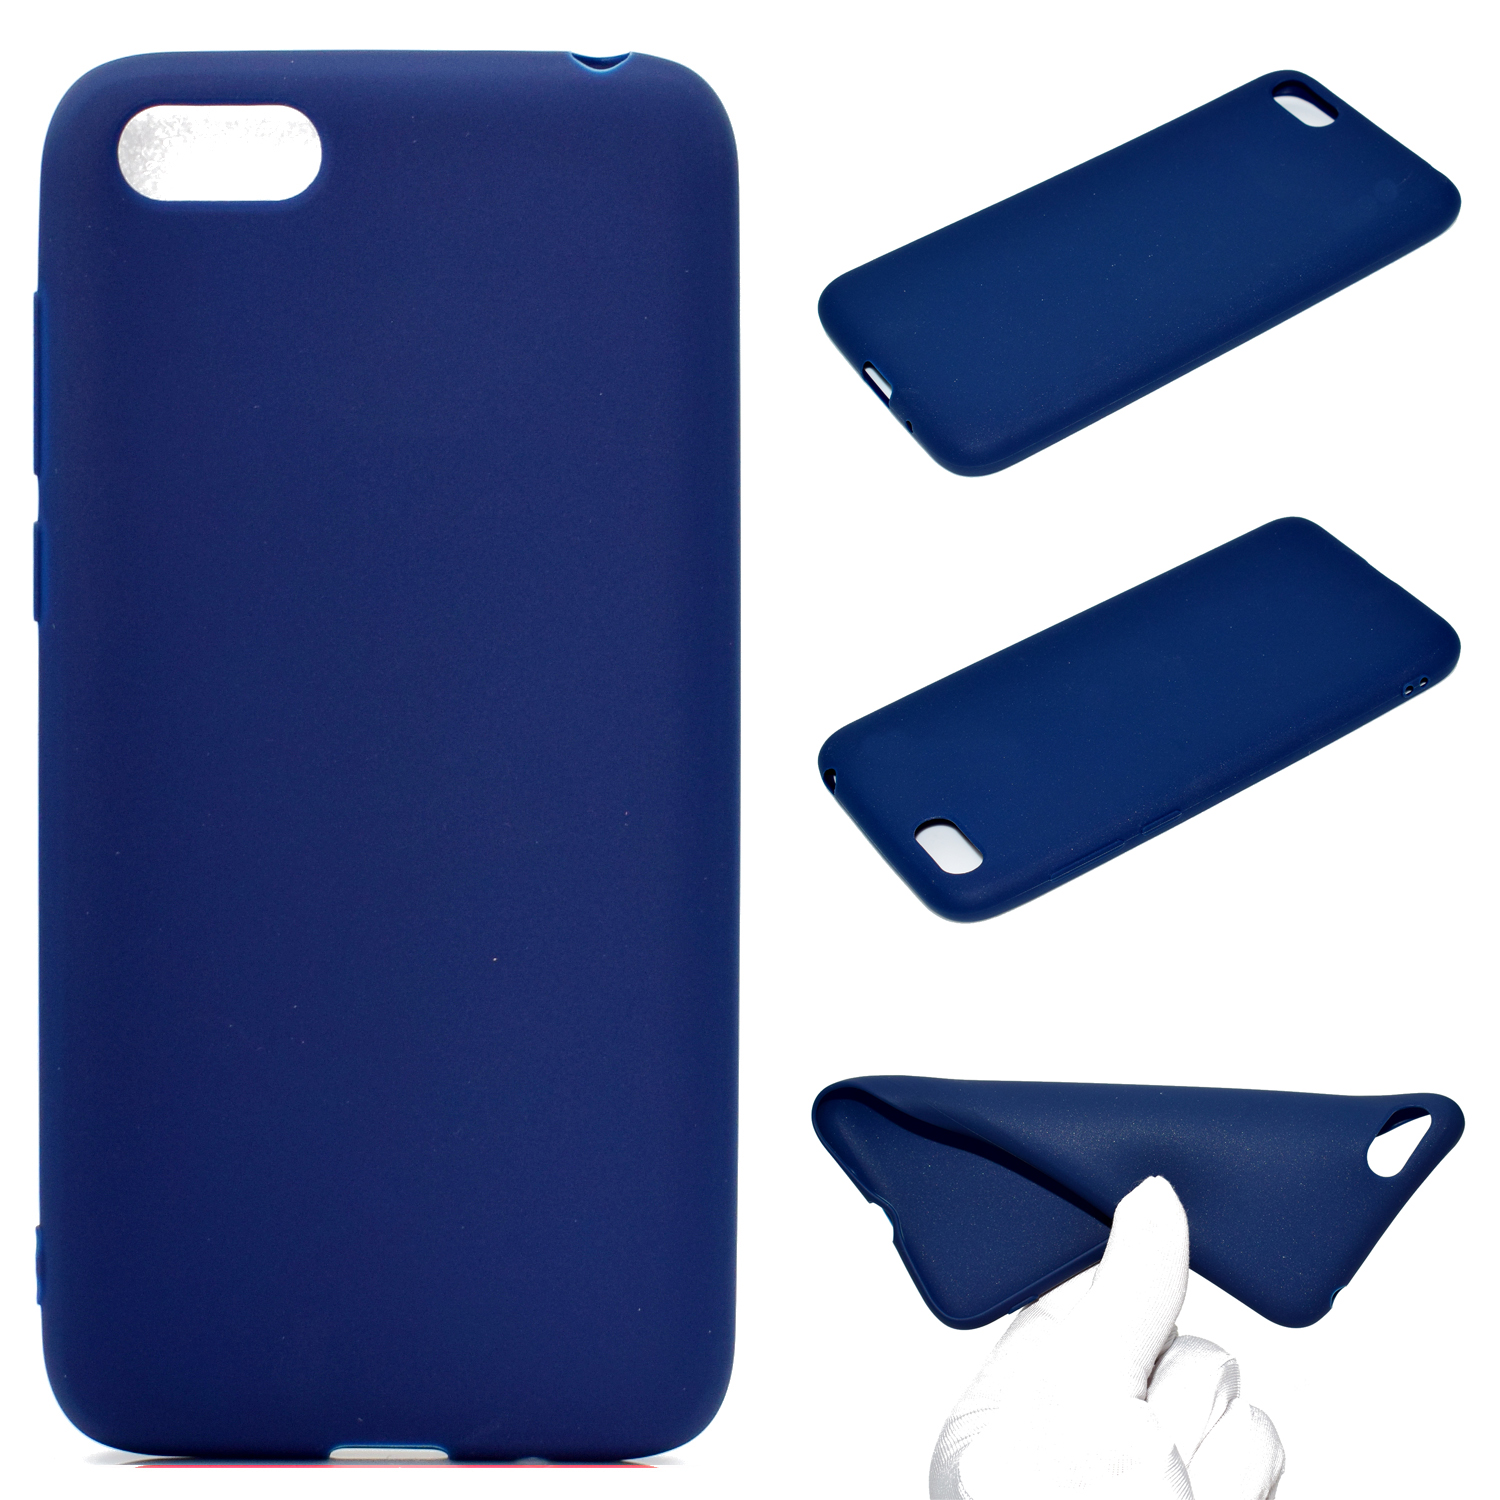 for HUAWEI Y5 2018 Cute Candy Color Matte TPU Anti-scratch Non-slip Protective Cover Back Case Navy